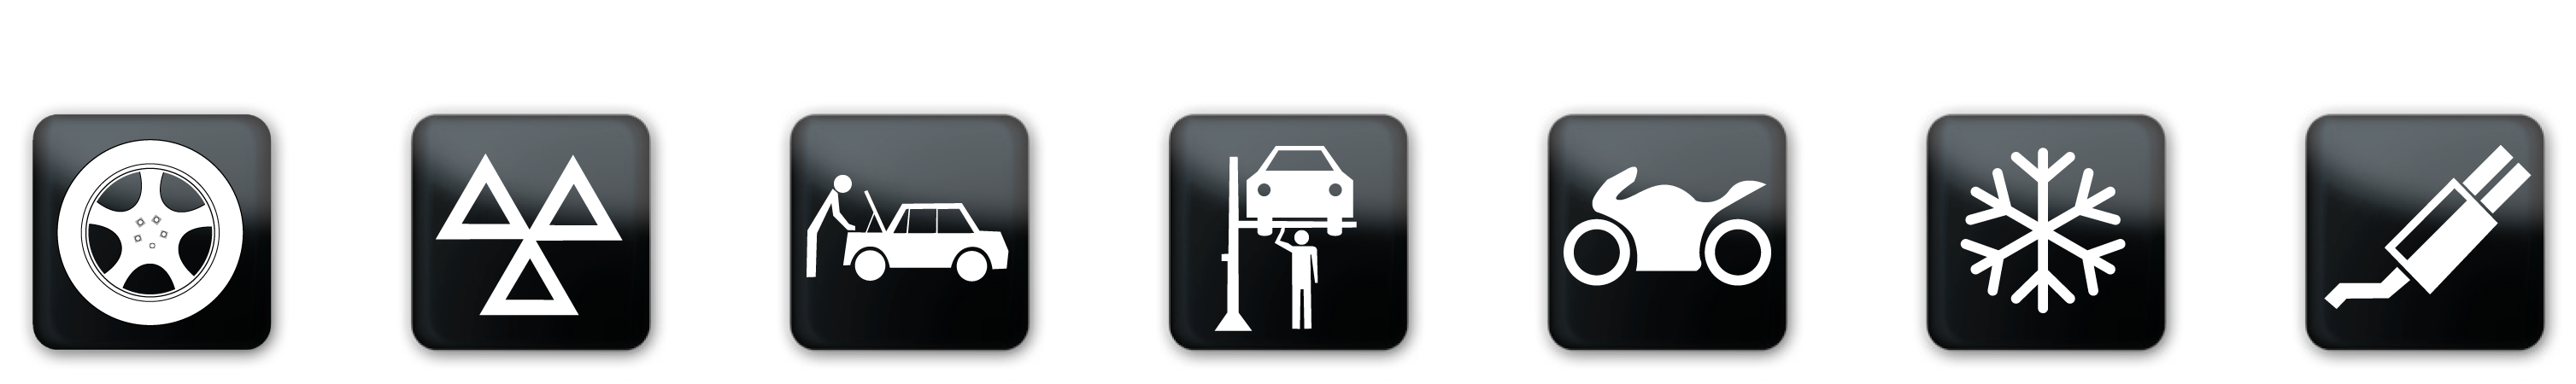 andover tyre auto services icons